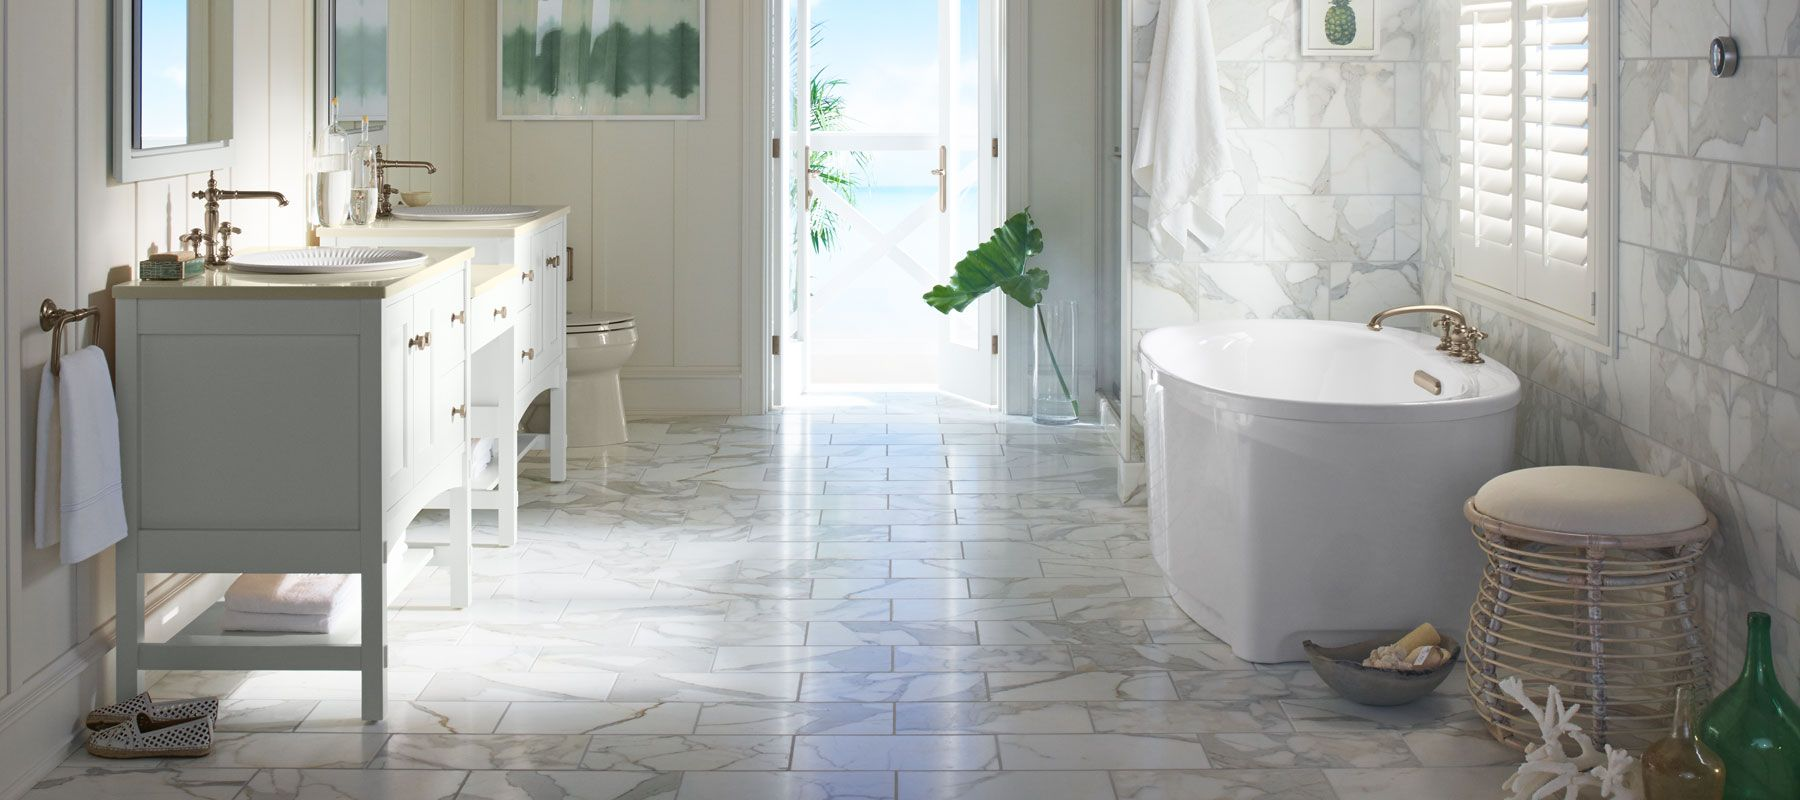 Floor Plan Options | Bathroom Ideas \u0026 Planning | Bathroom | KOHLER